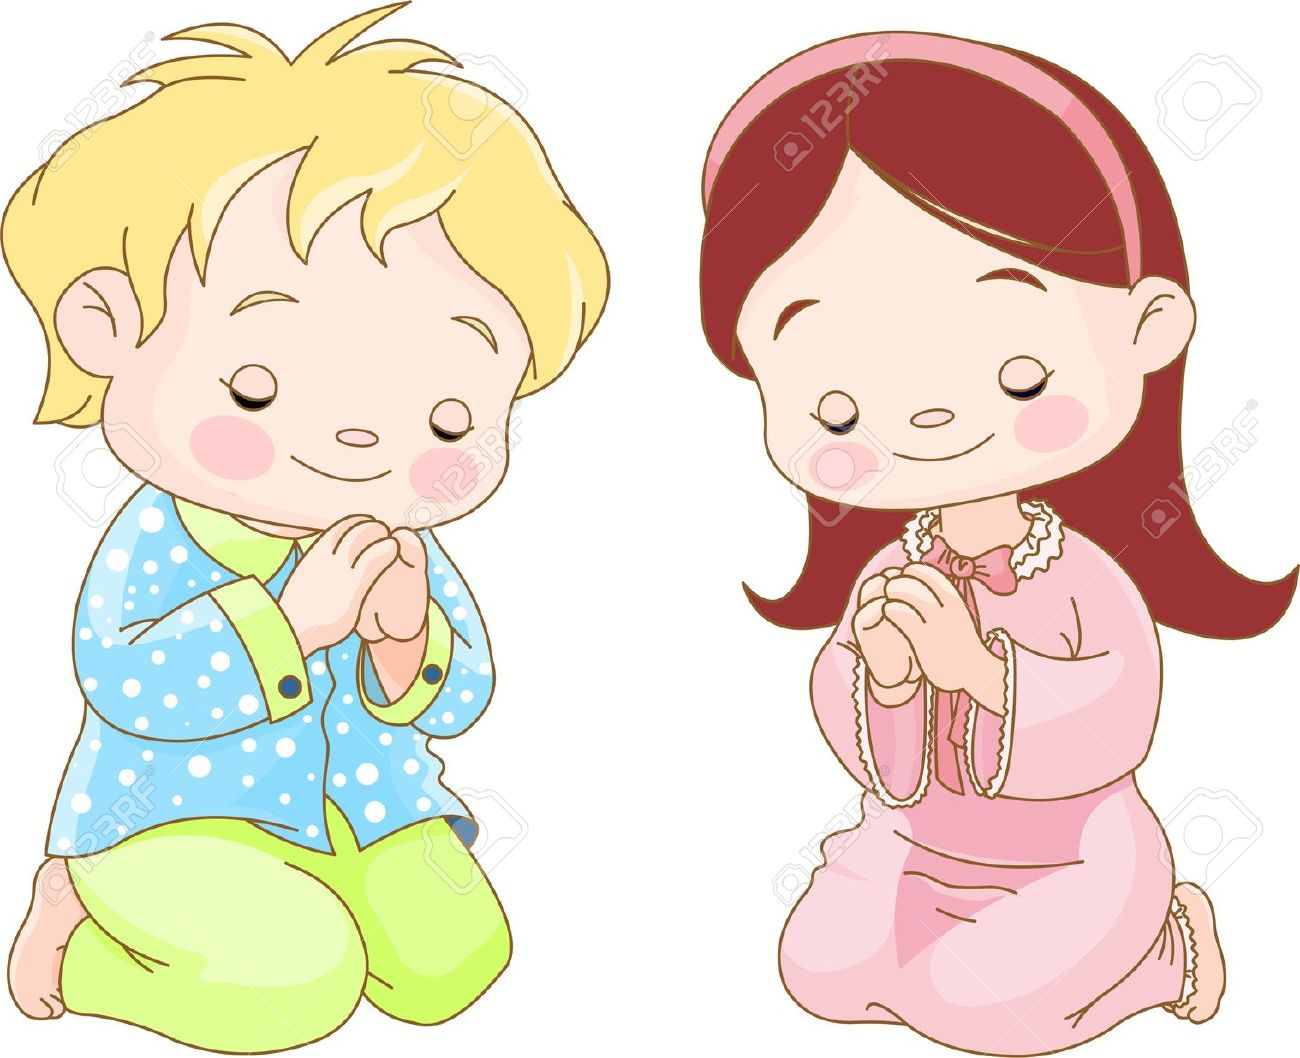 Boy and girl praying clipart.